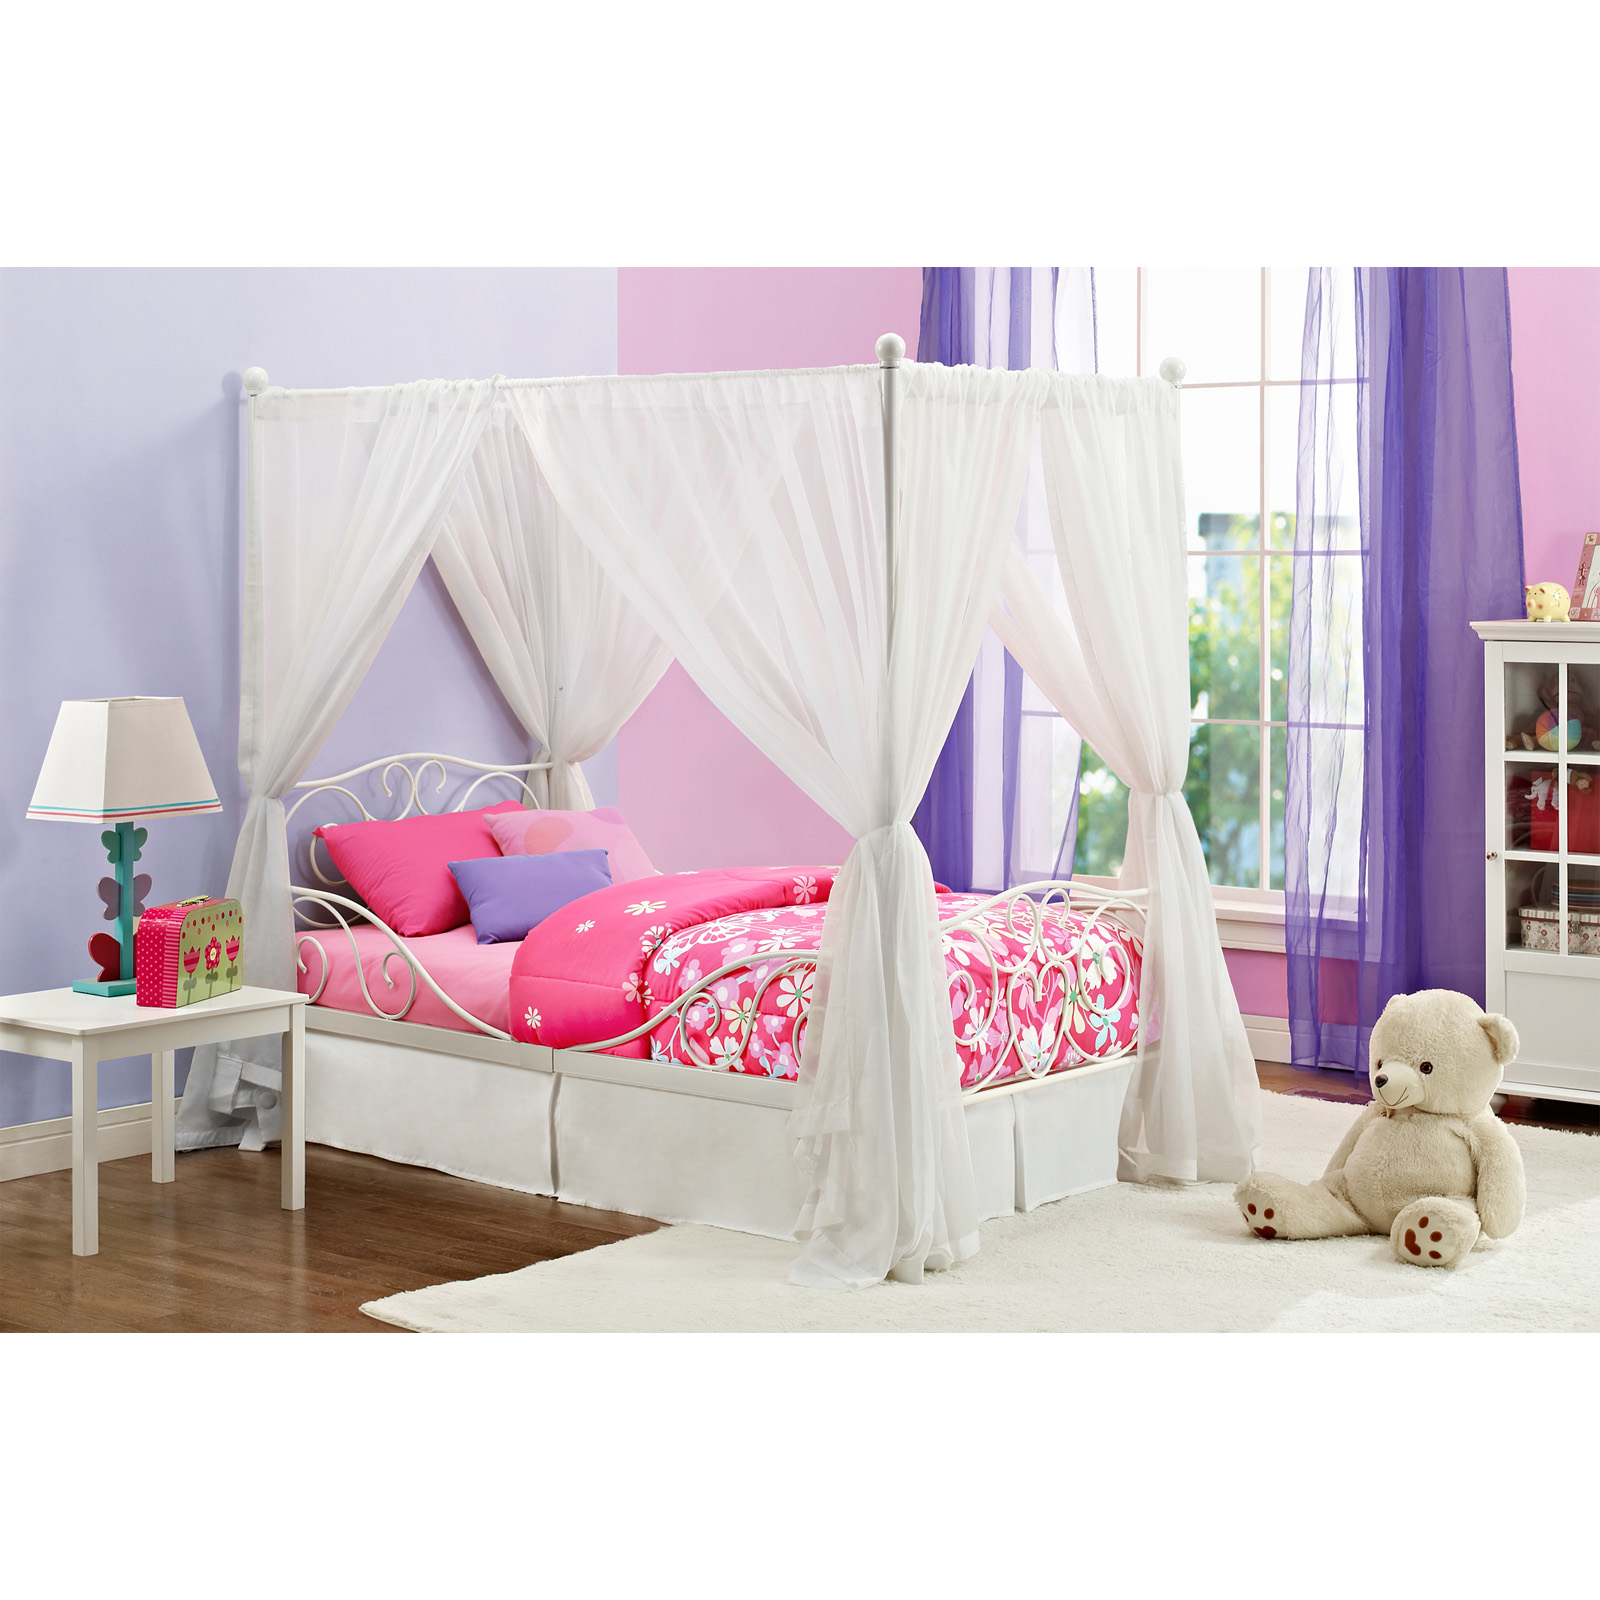 DHP Twin Canopy Bed  sc 1 st  Hayneedle & Kids Canopy Beds | Hayneedle